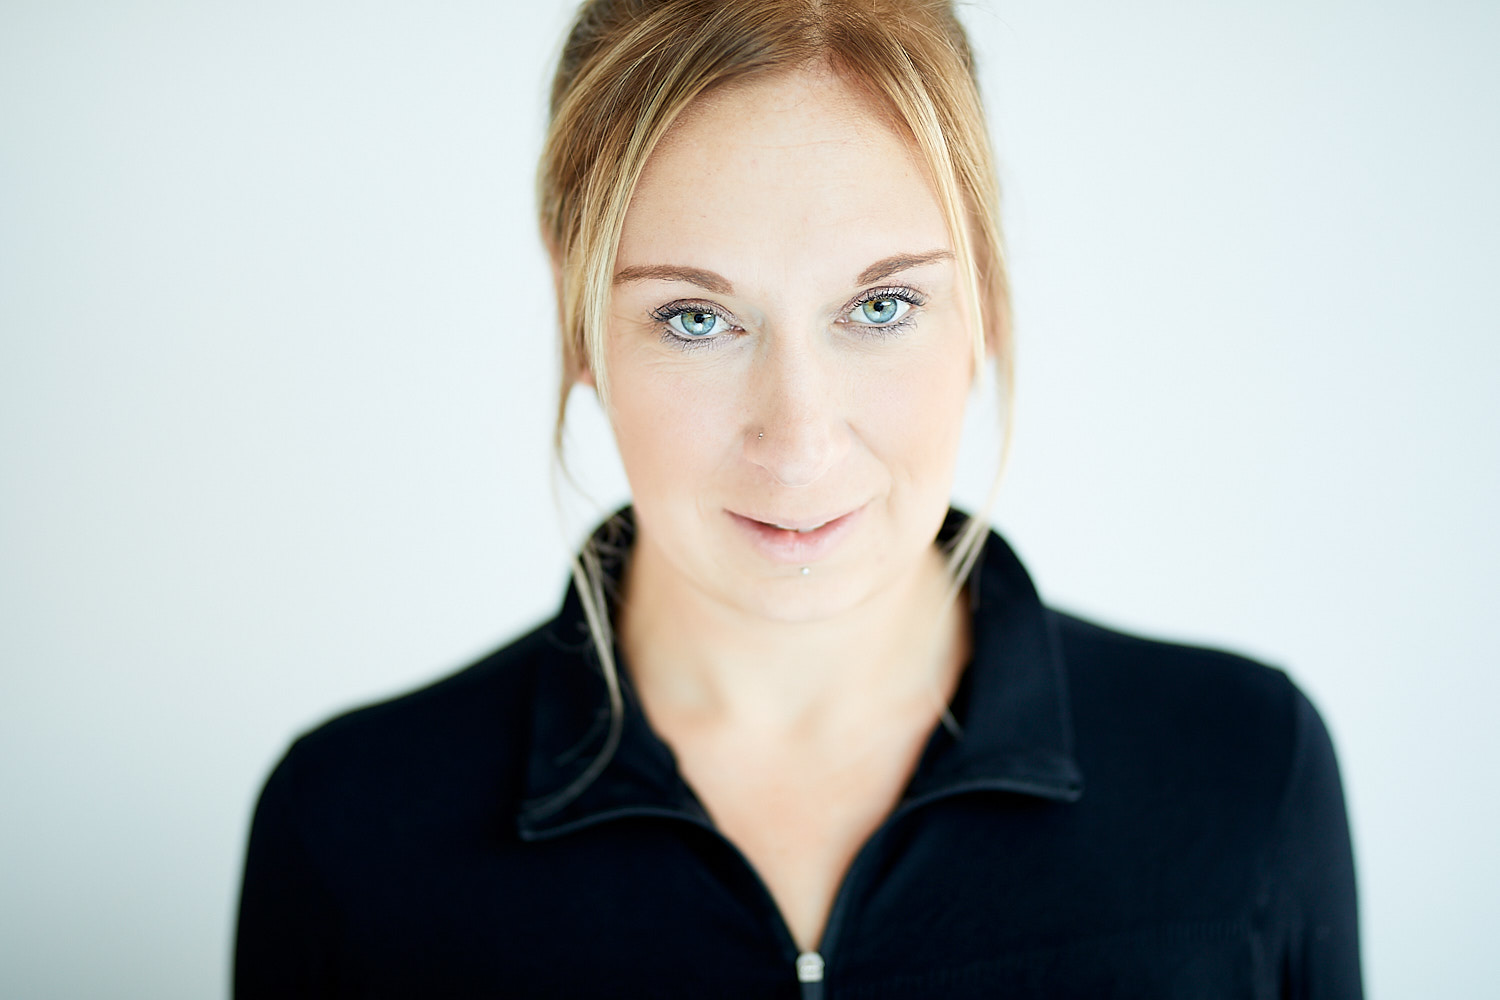 Image: Headshots are something I always charge for now. I have a solid portfolio and there is no rea...